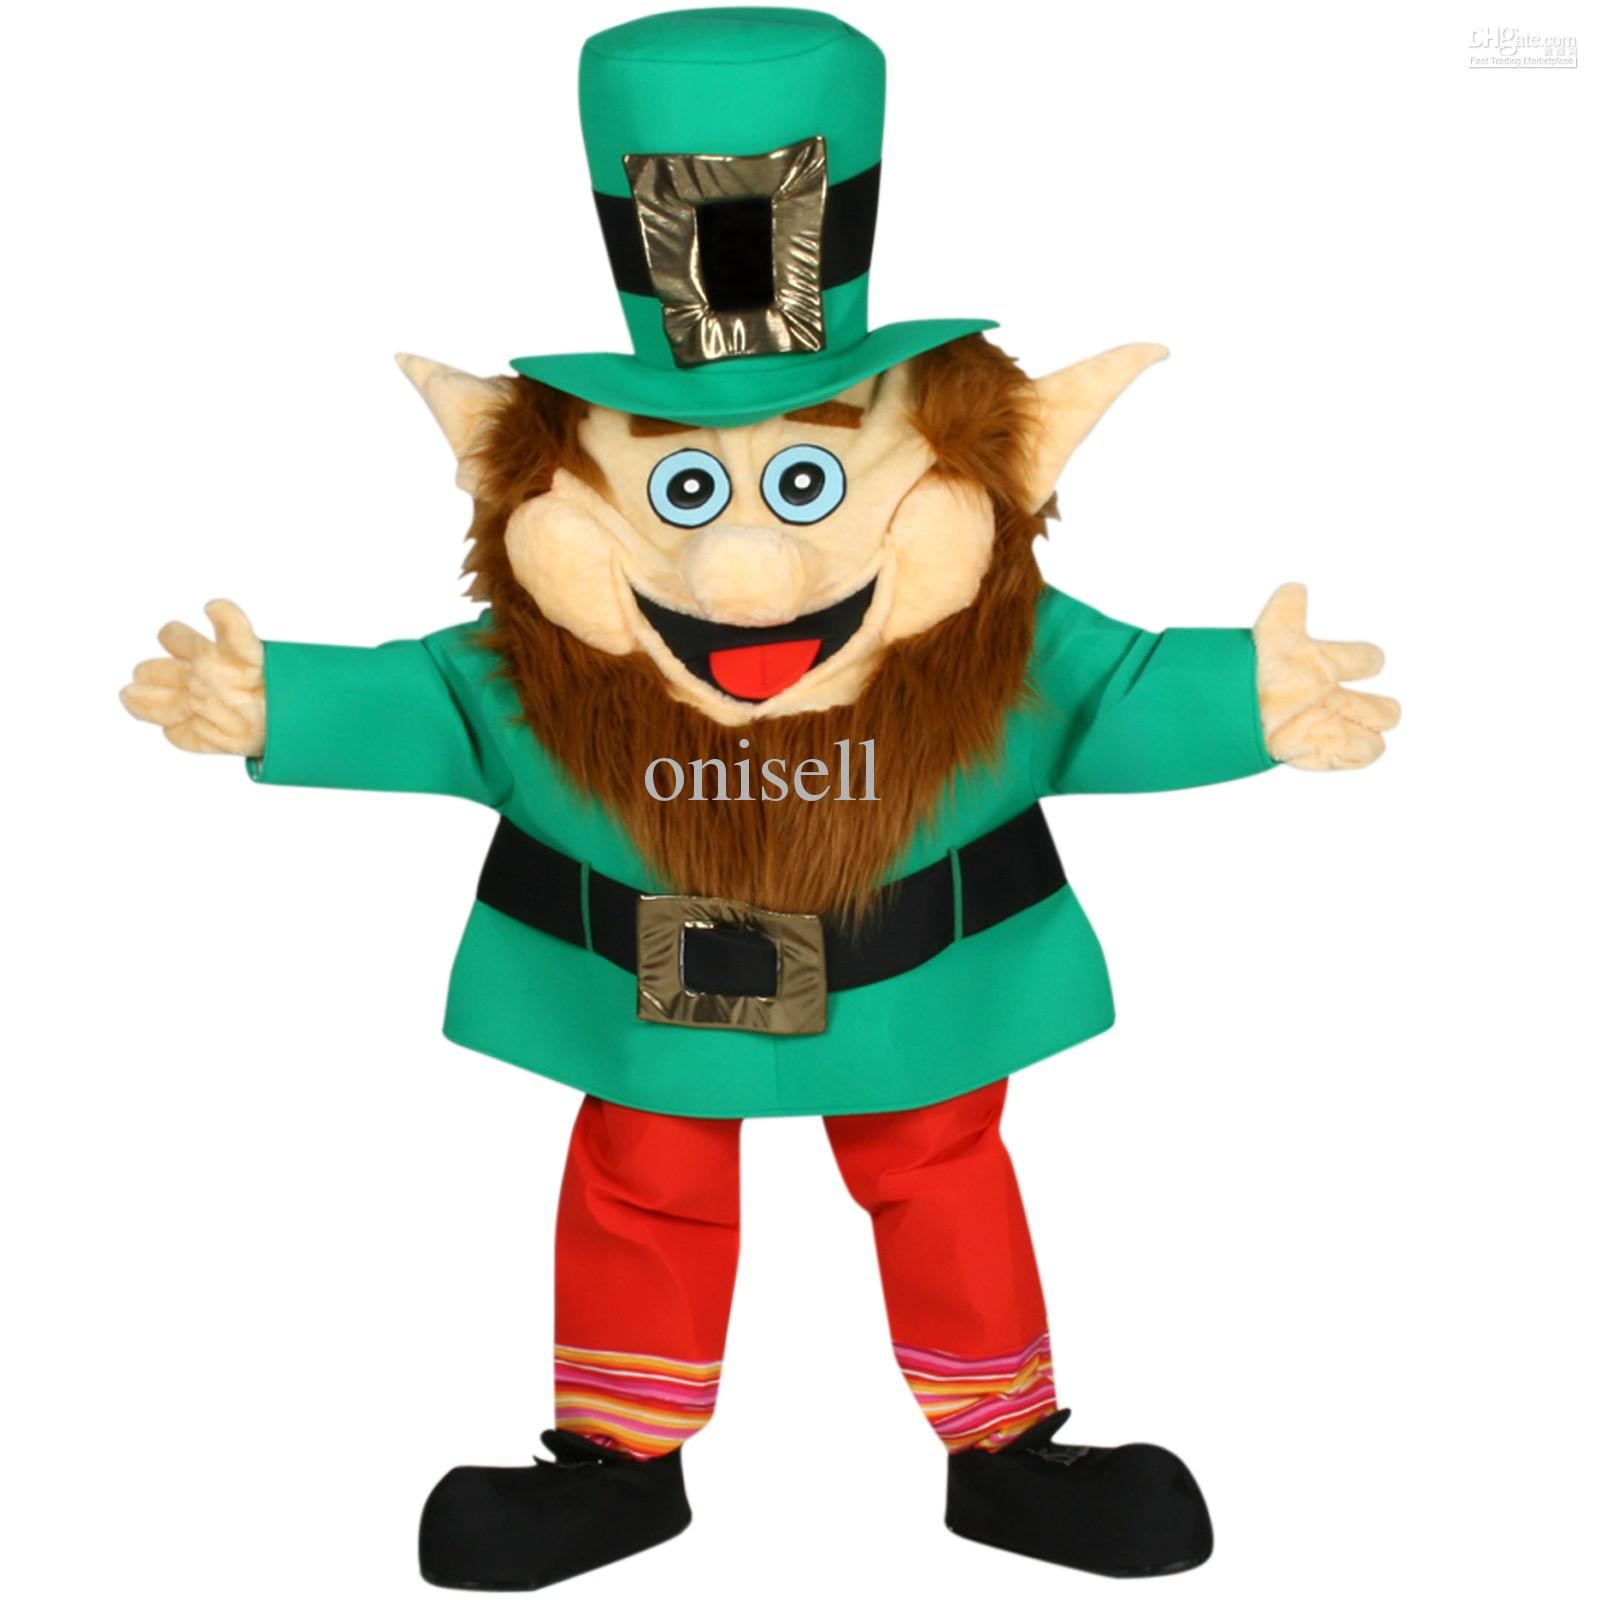 Larry The Leprechaun Mascot Adult Party Costume Cartoon Make A Mascot Head Cat Mascot Head From Onisell $149.24| Dhgate.Com  sc 1 st  DHgate.com & Larry The Leprechaun Mascot Adult Party Costume Cartoon Make A ...